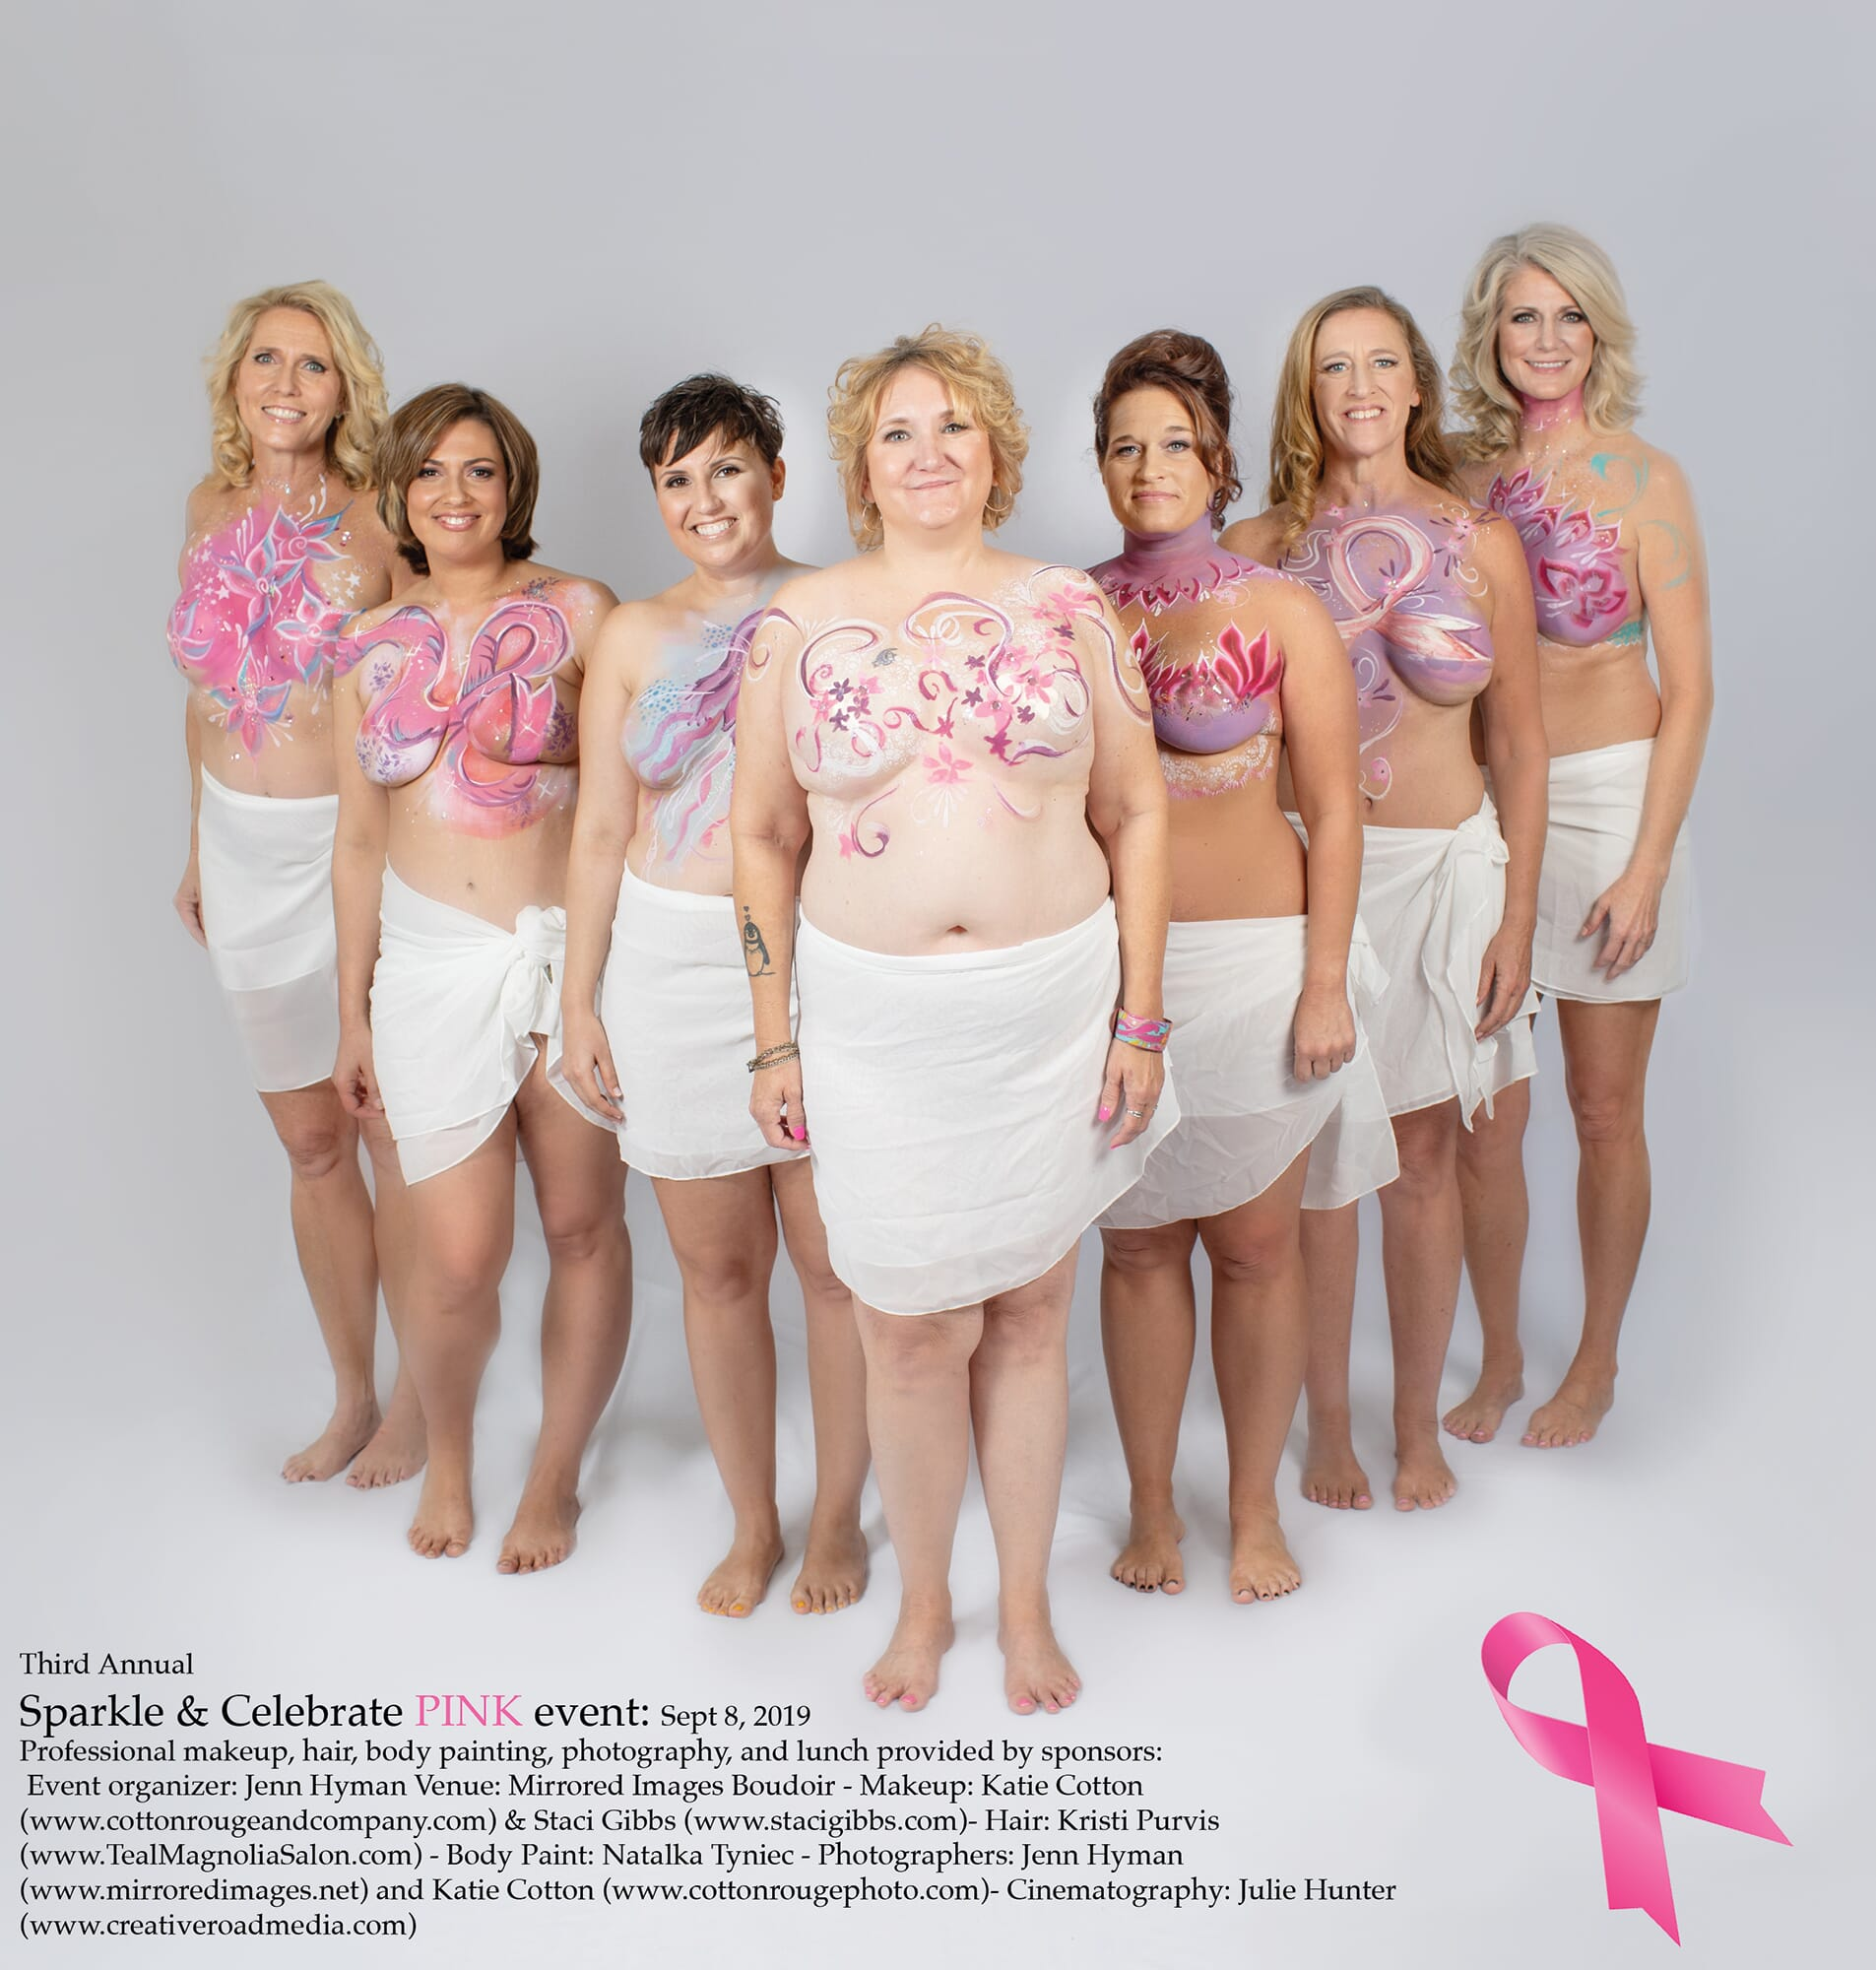 breast cancer event, breast cancer, cancer, survivor, mastectomy, breast reconstruction, atlanta, cancer event, free event, volunteer, susan g komen, body paint, glitter, self love, body positive, embrace your scars